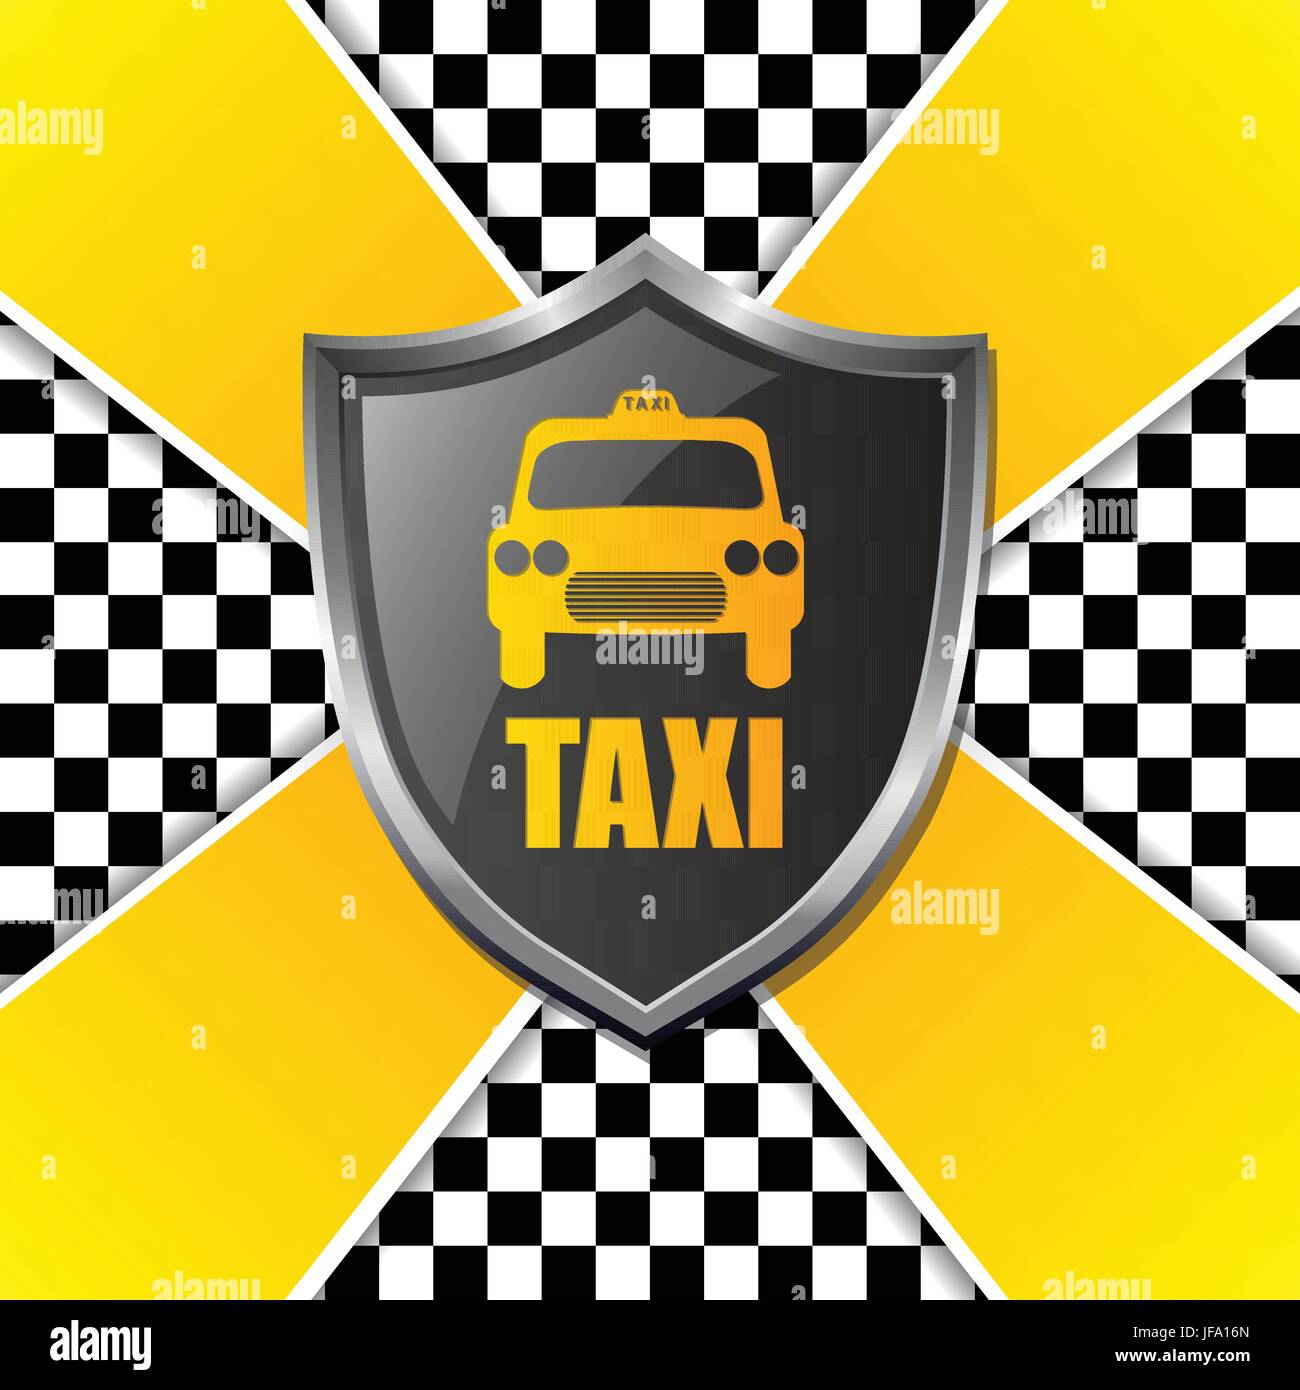 Abstract taxi background design with shield and stripes Stock Vector